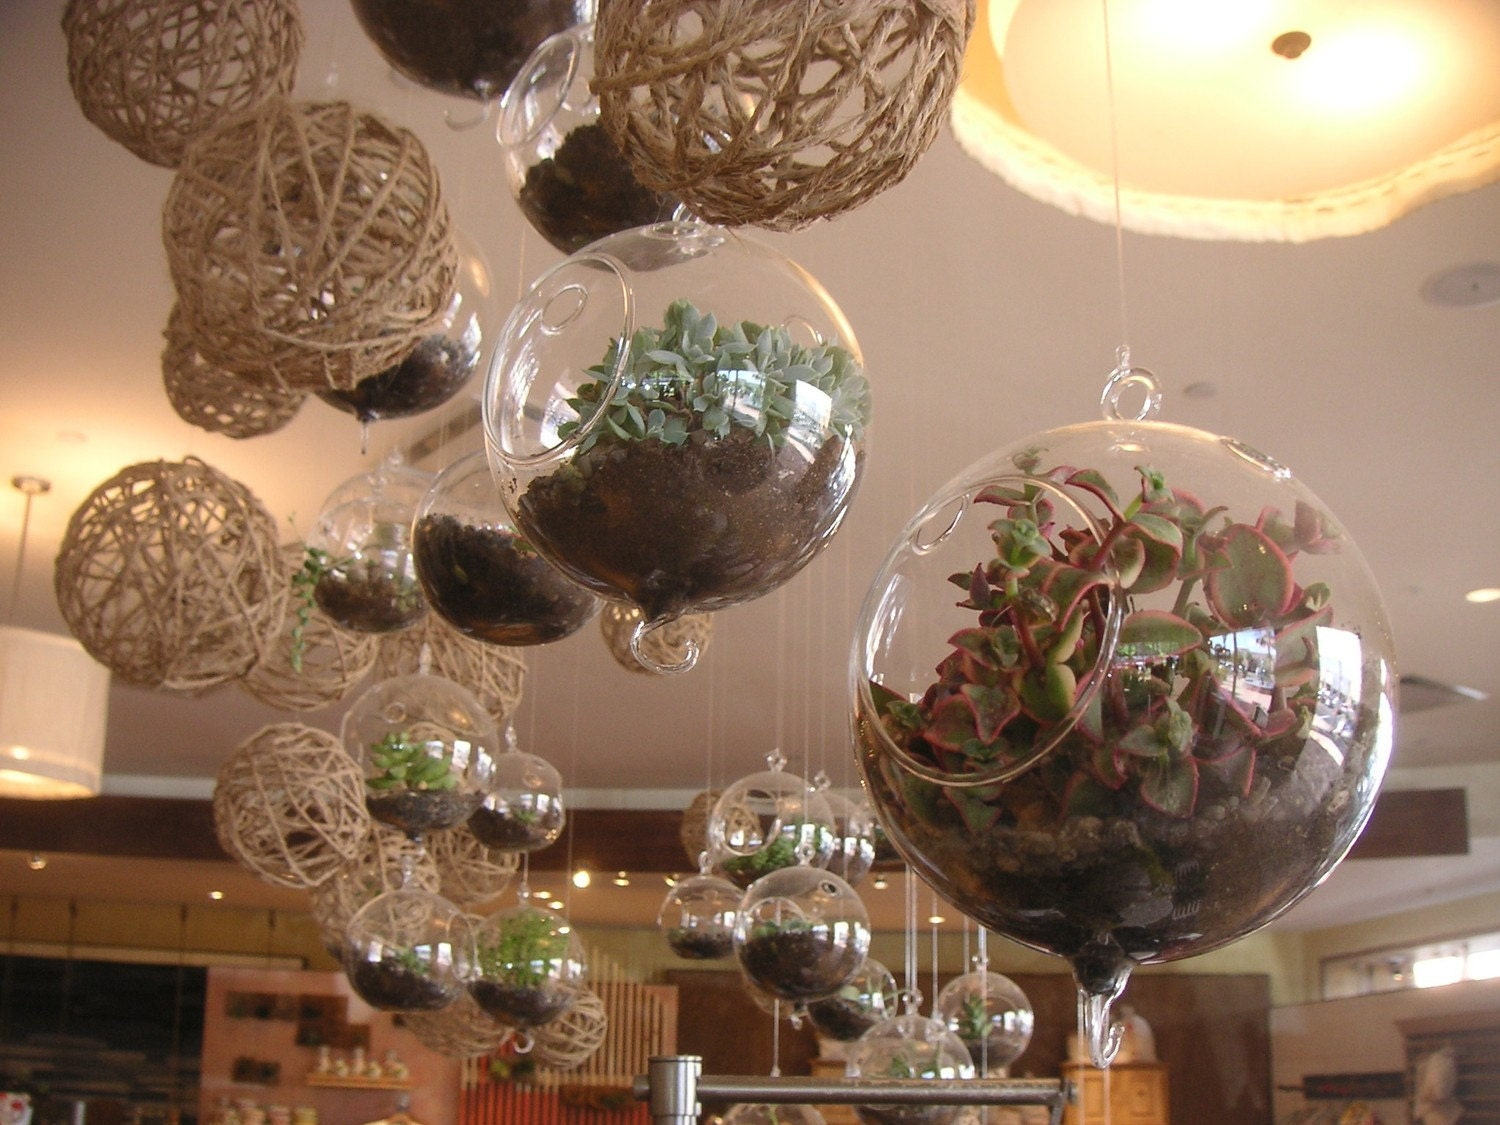 Diy a collection of succulent plants and glass globes